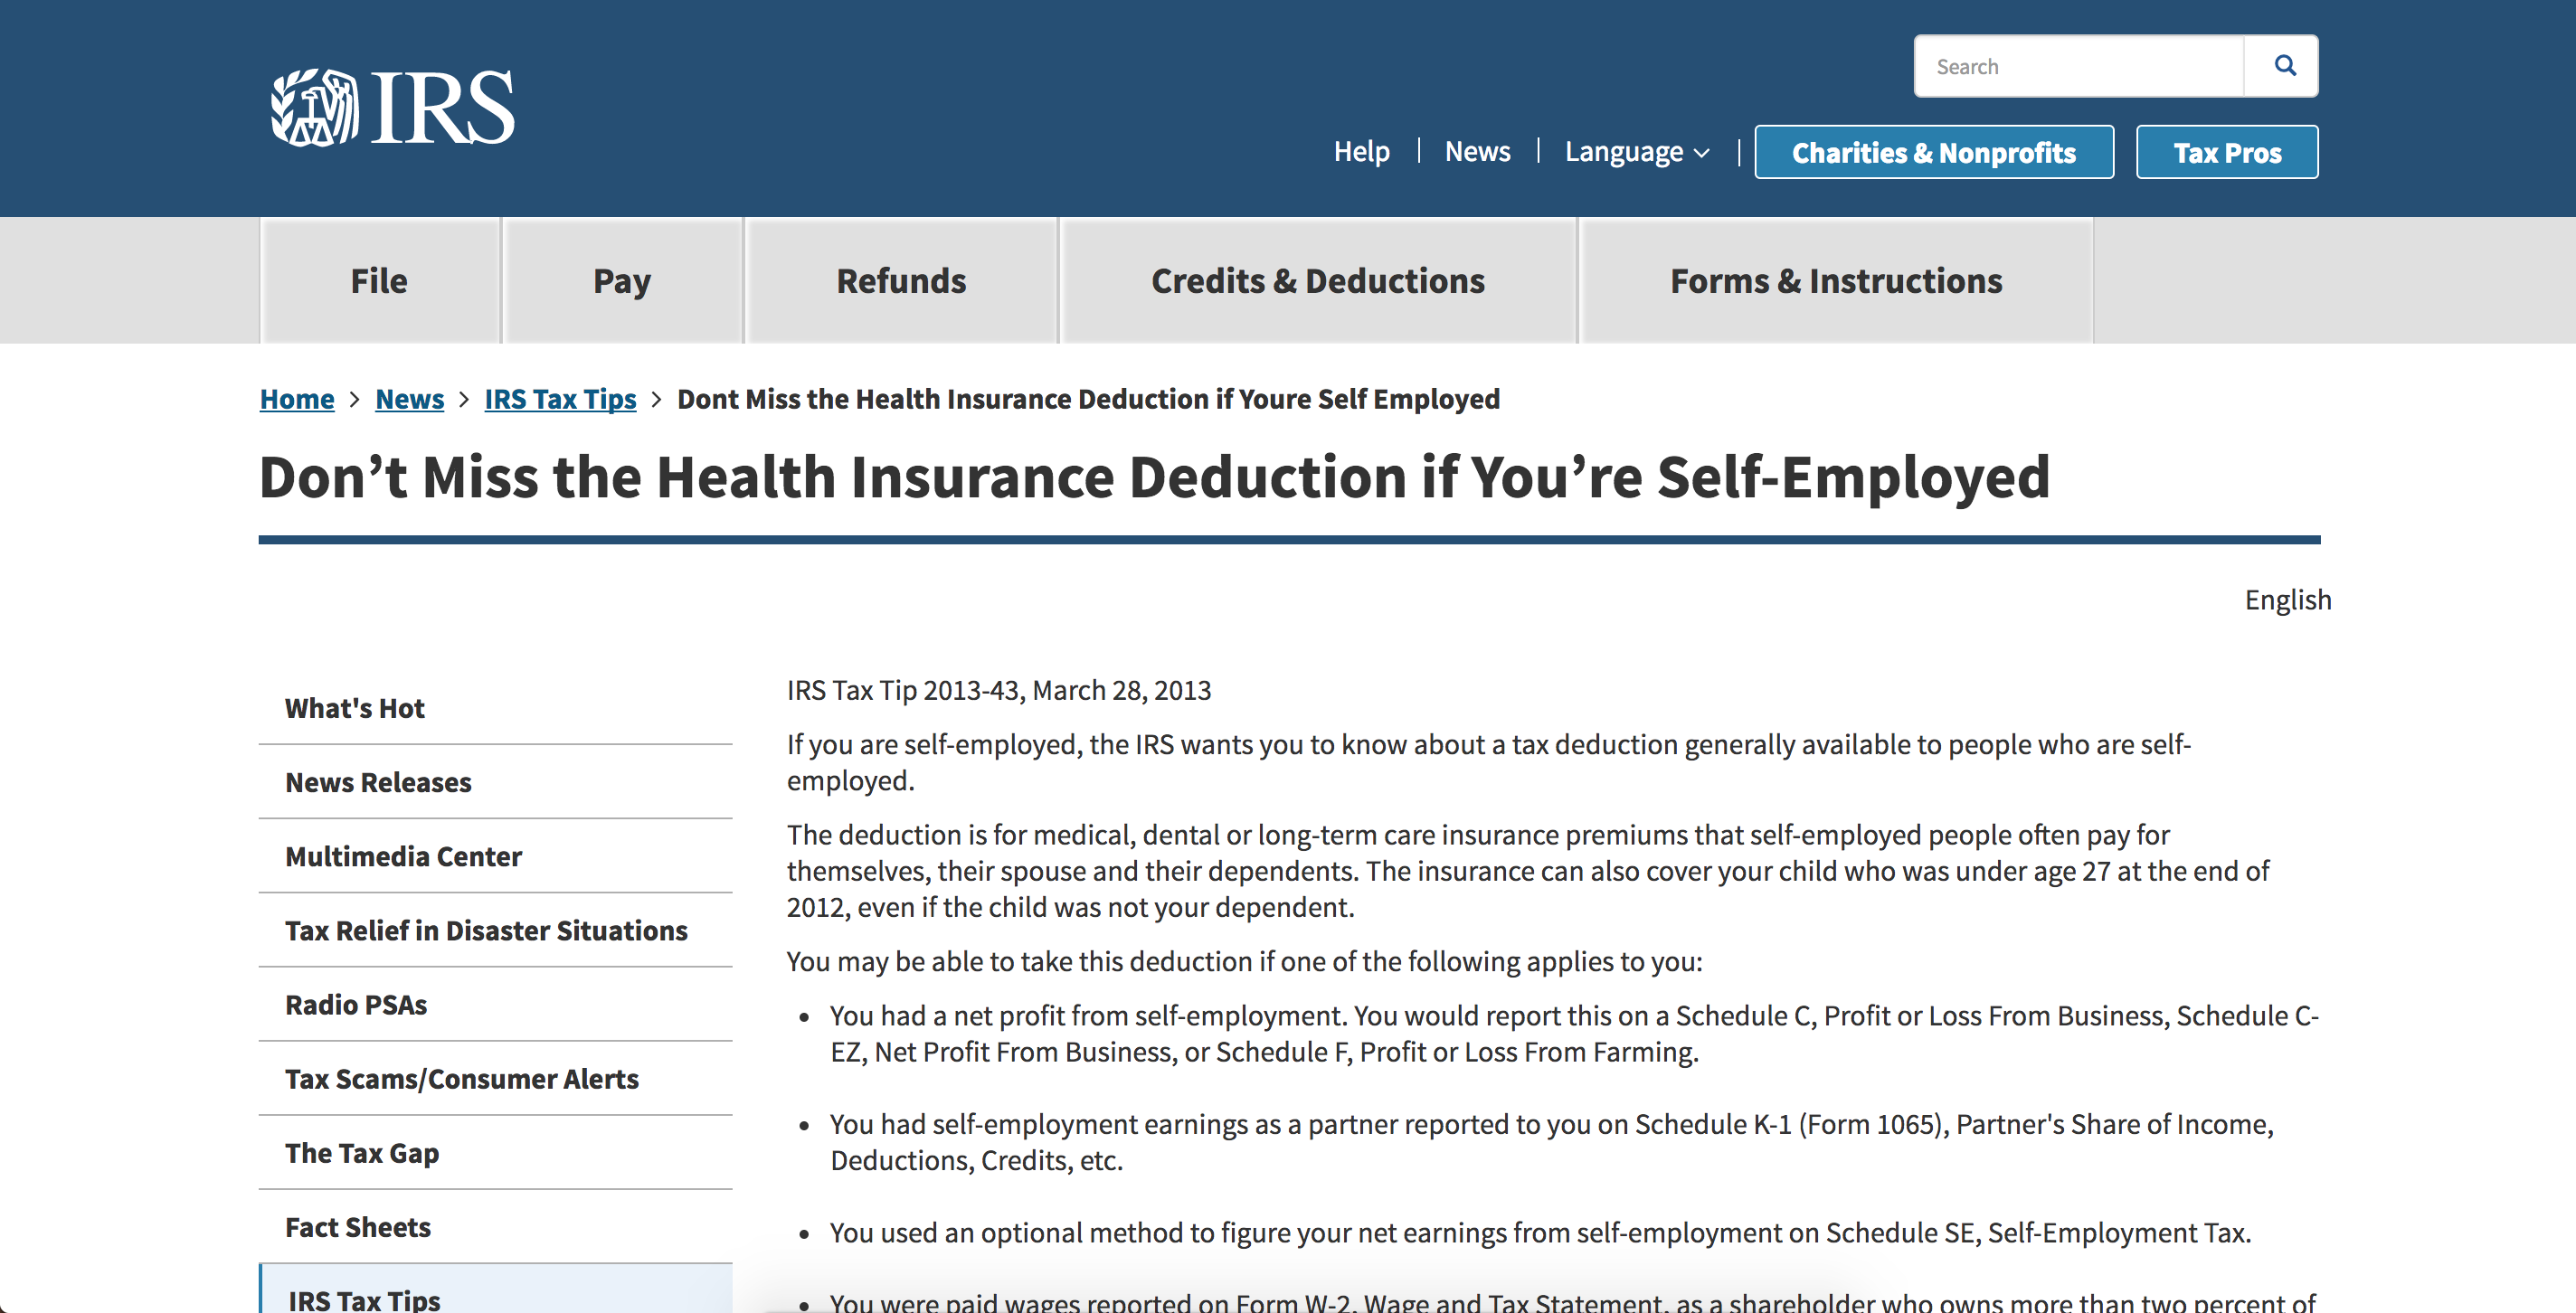 IRs: Don't miss the health insurance deduction if you're self-employed